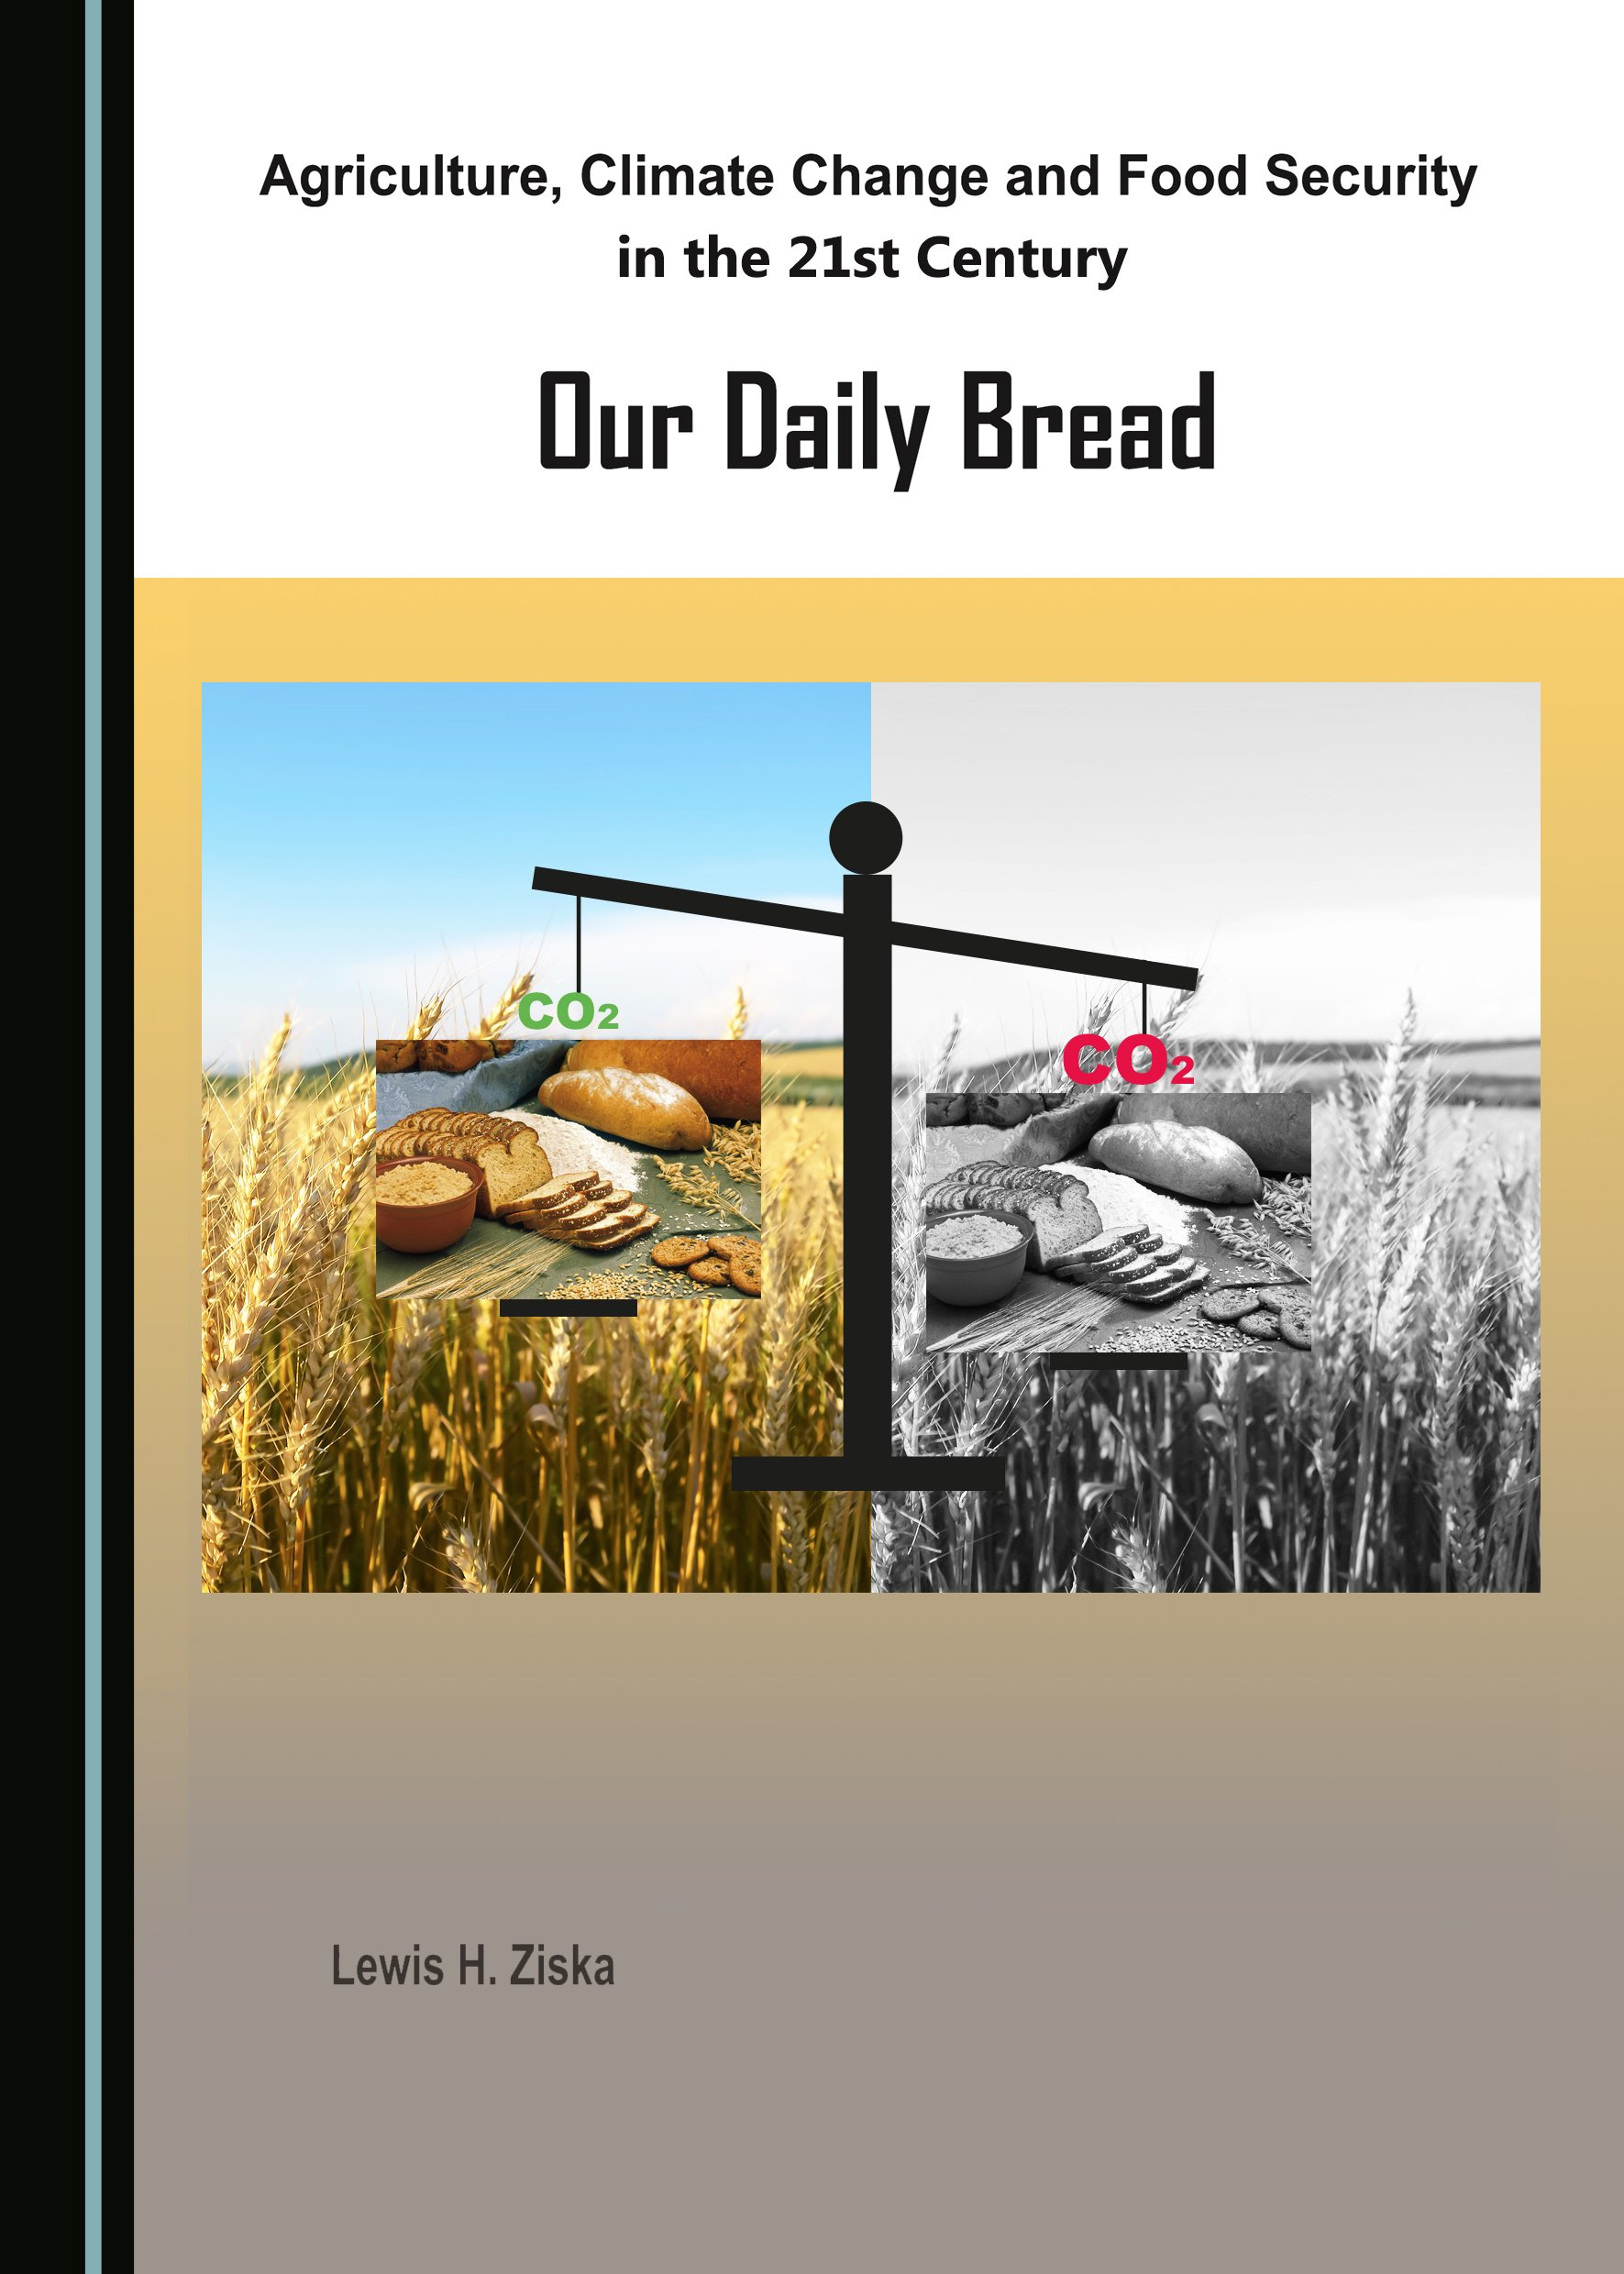 Agriculture, Climate Change and Food Security in the 21st Century: Our Daily Bread